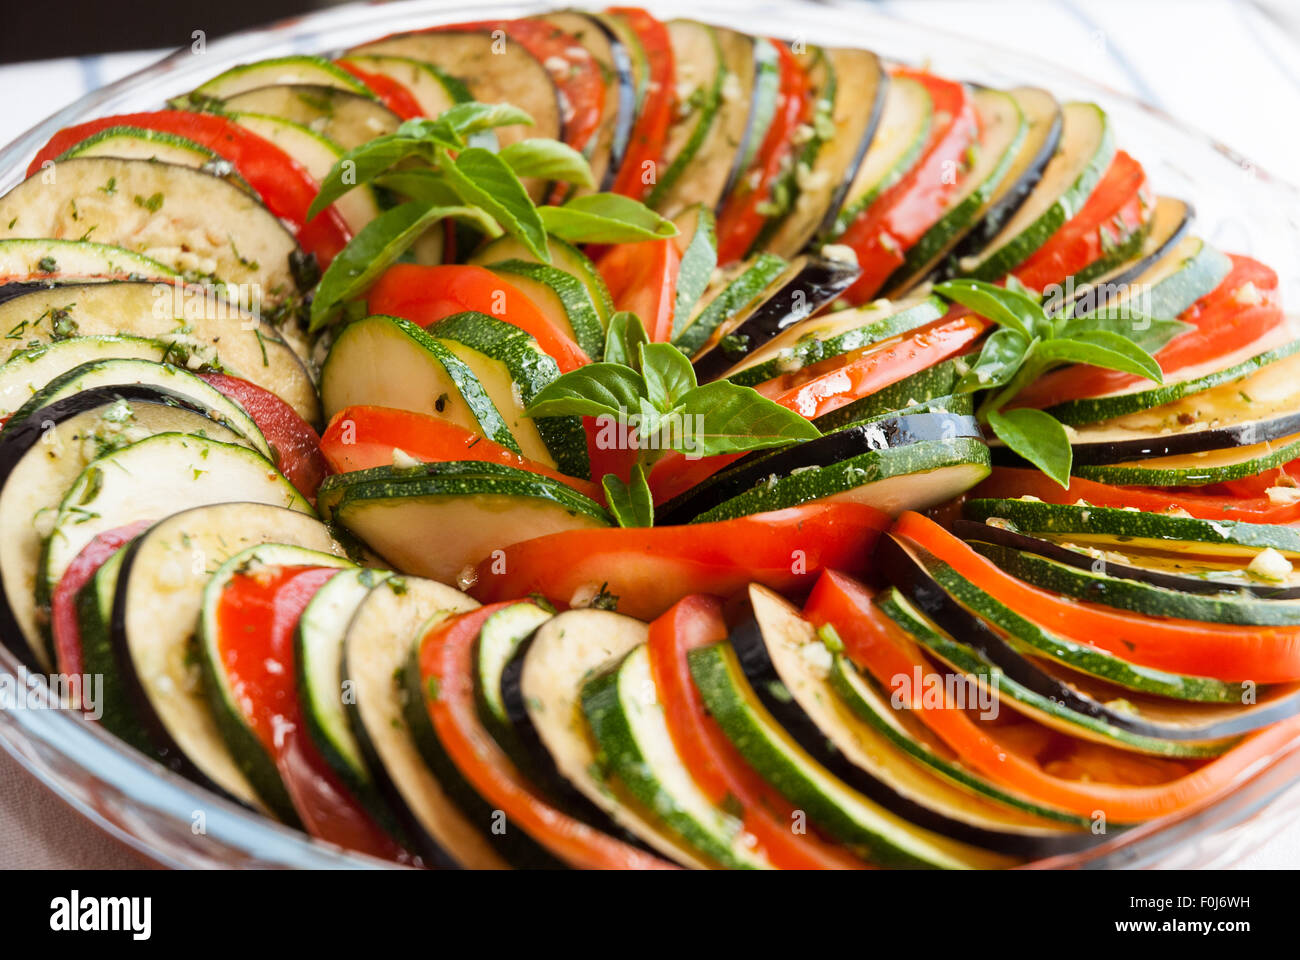 French Provincial Cuisine Cooking Of Ratatouille Traditional French Provencal